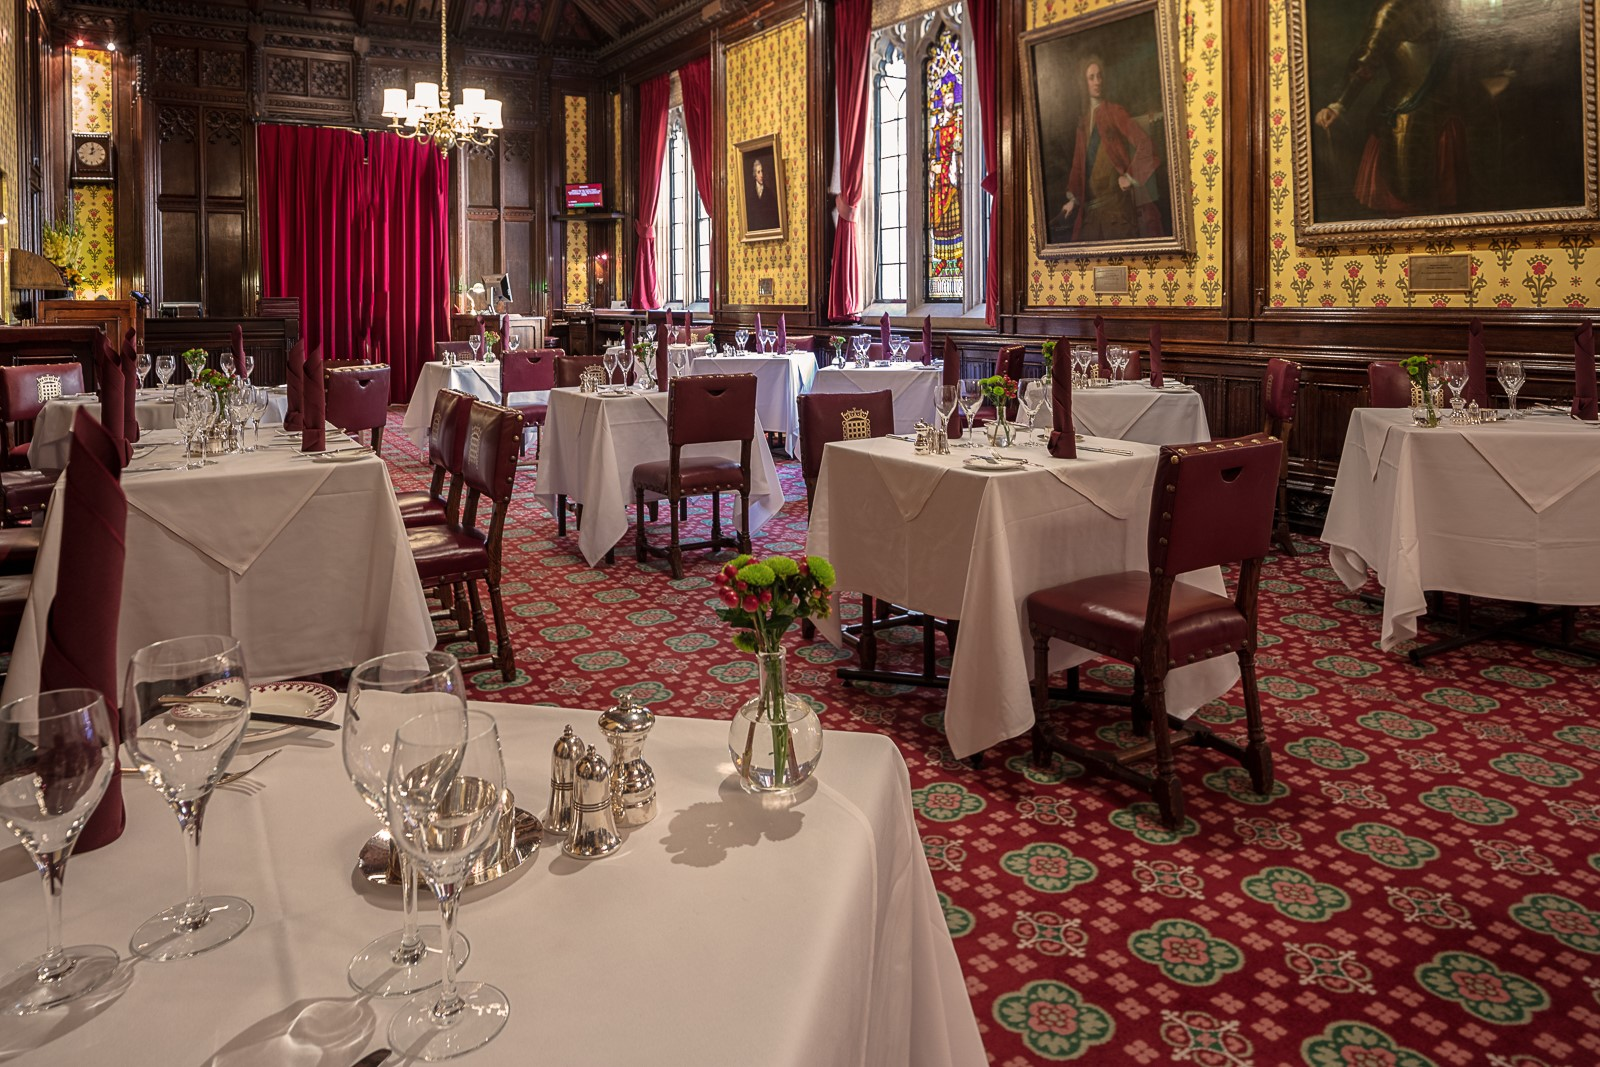 Peers' Dining Room at the House of Lords - Book restaurants online